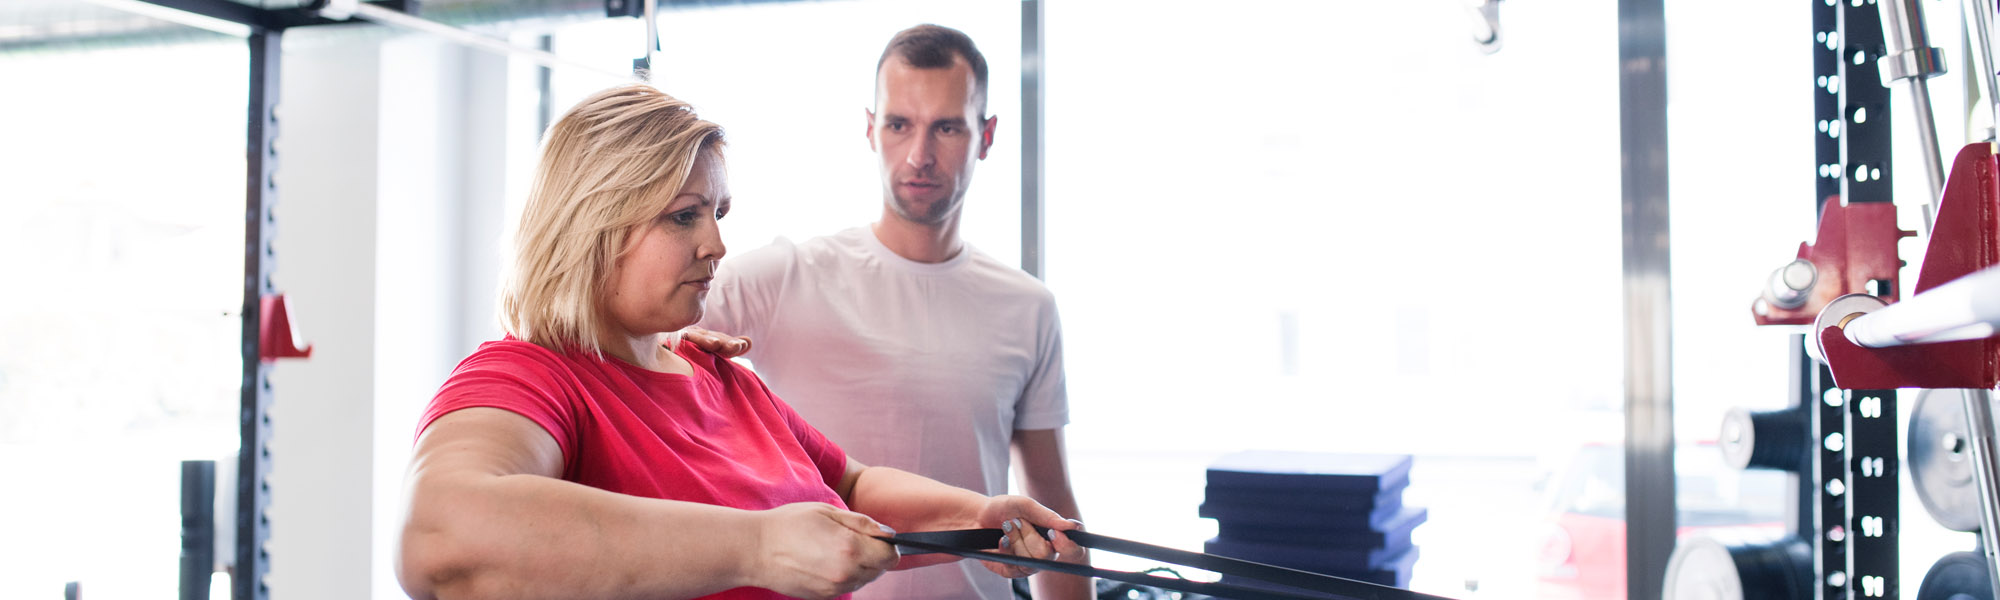 male trainer helping woman with workout bands in gym